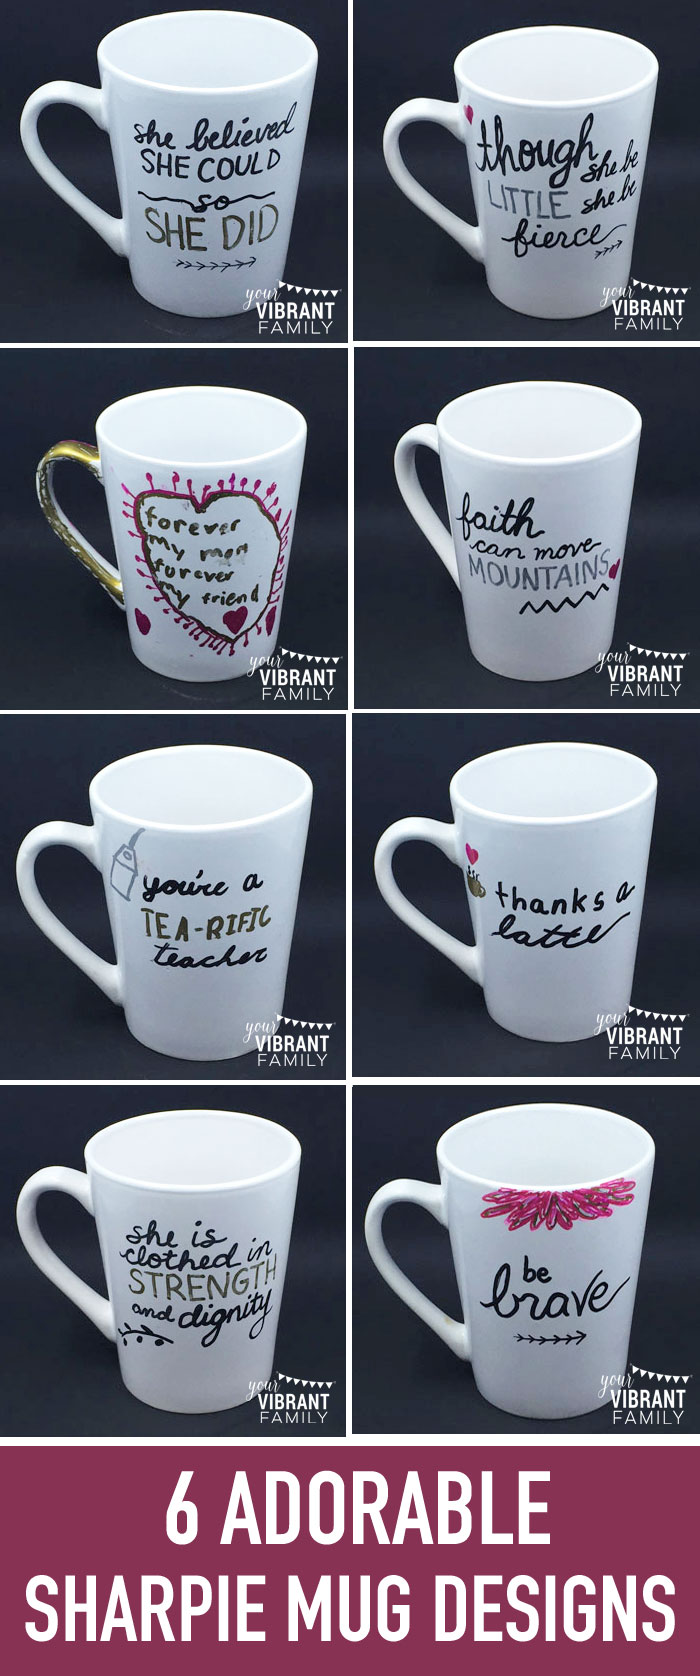 6-Adorable-Sharpie-Mug-Designs